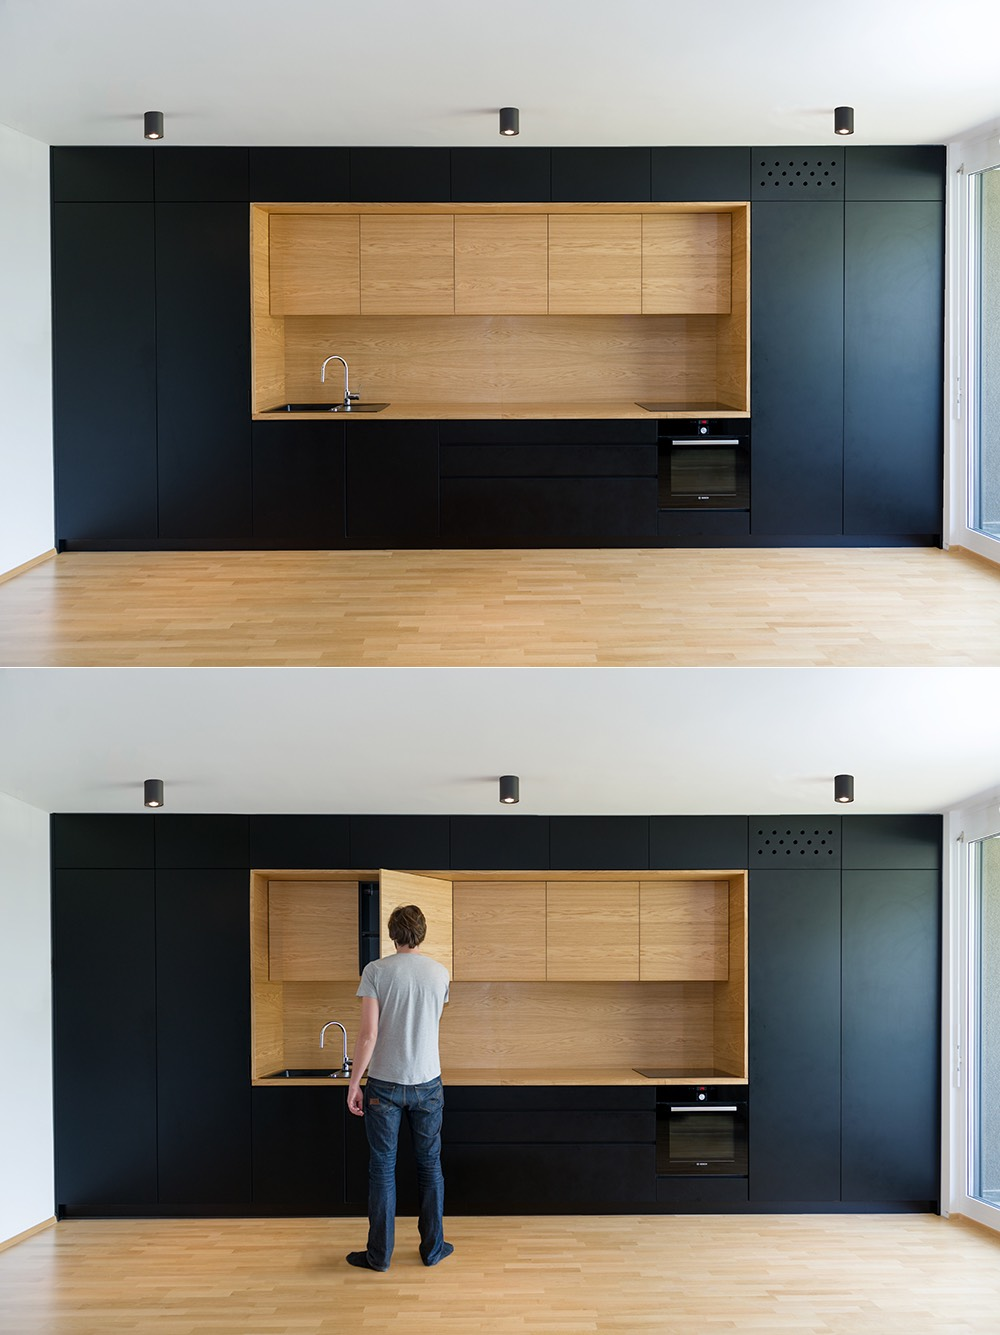 Kitchen Design Black black, white & wood kitchens: ideas & inspiration